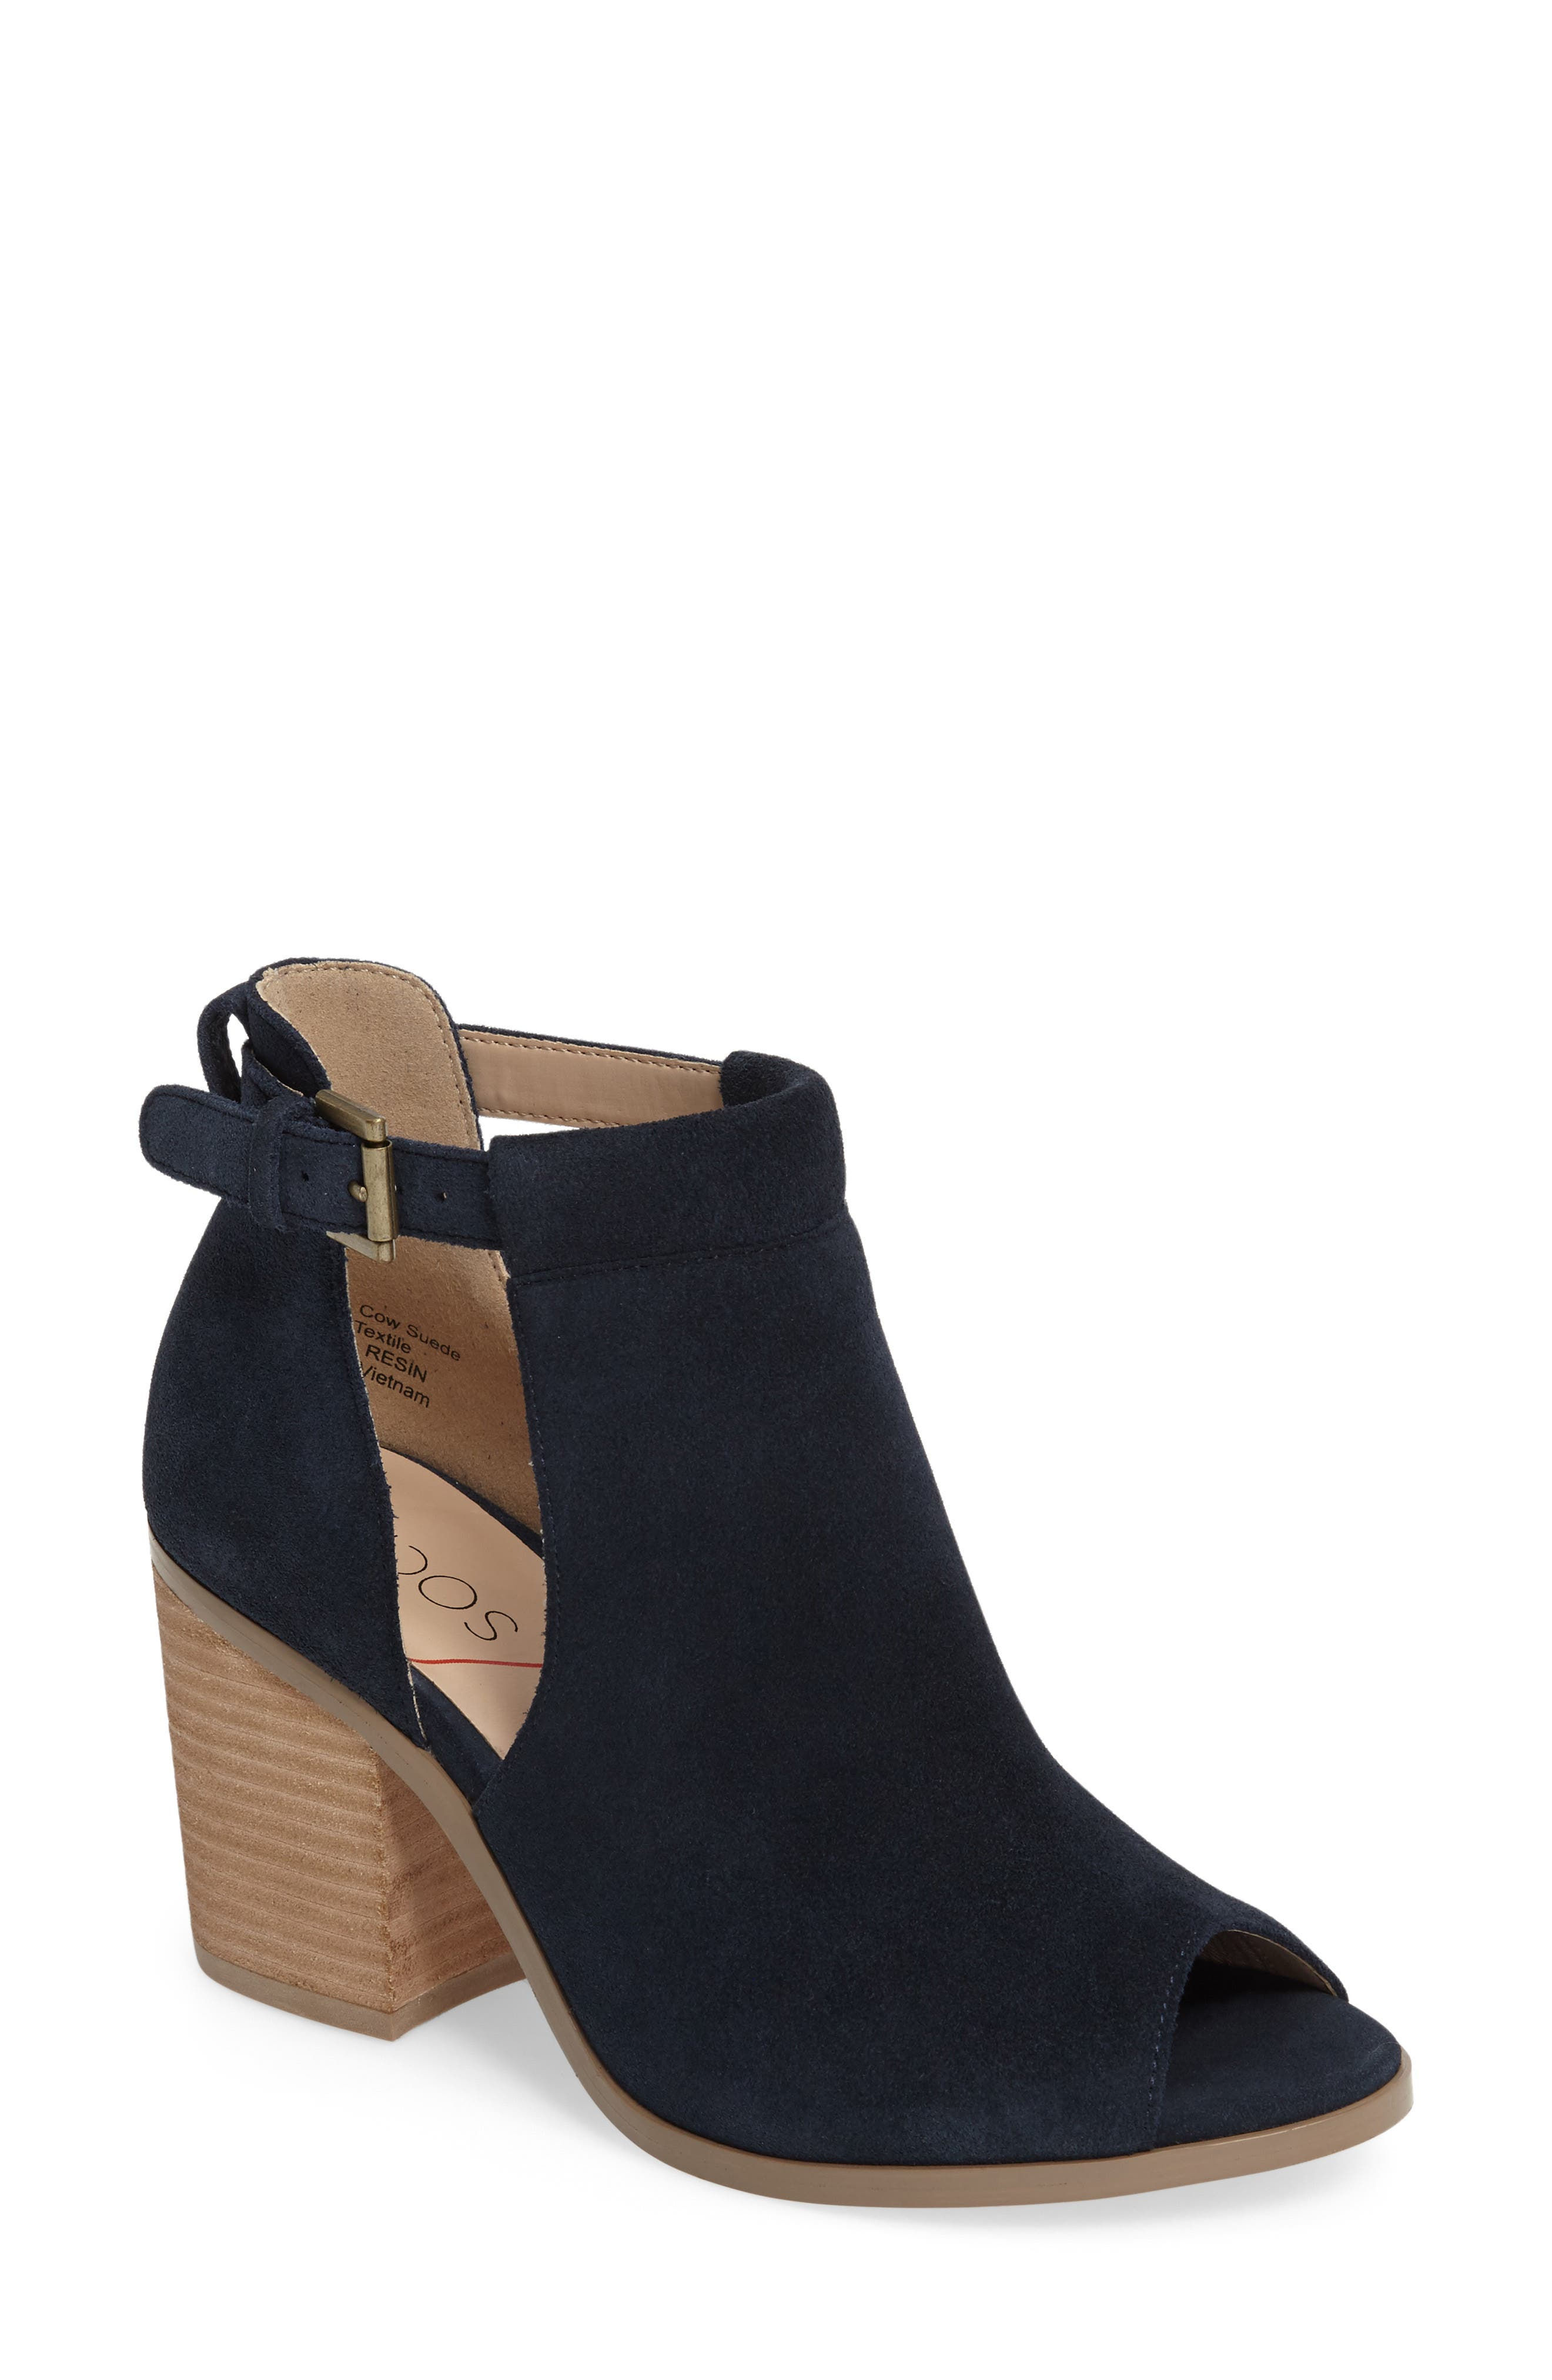 SOLE SOCIETY 'Ferris' Open Toe Bootie, Main, color, INK SUEDE